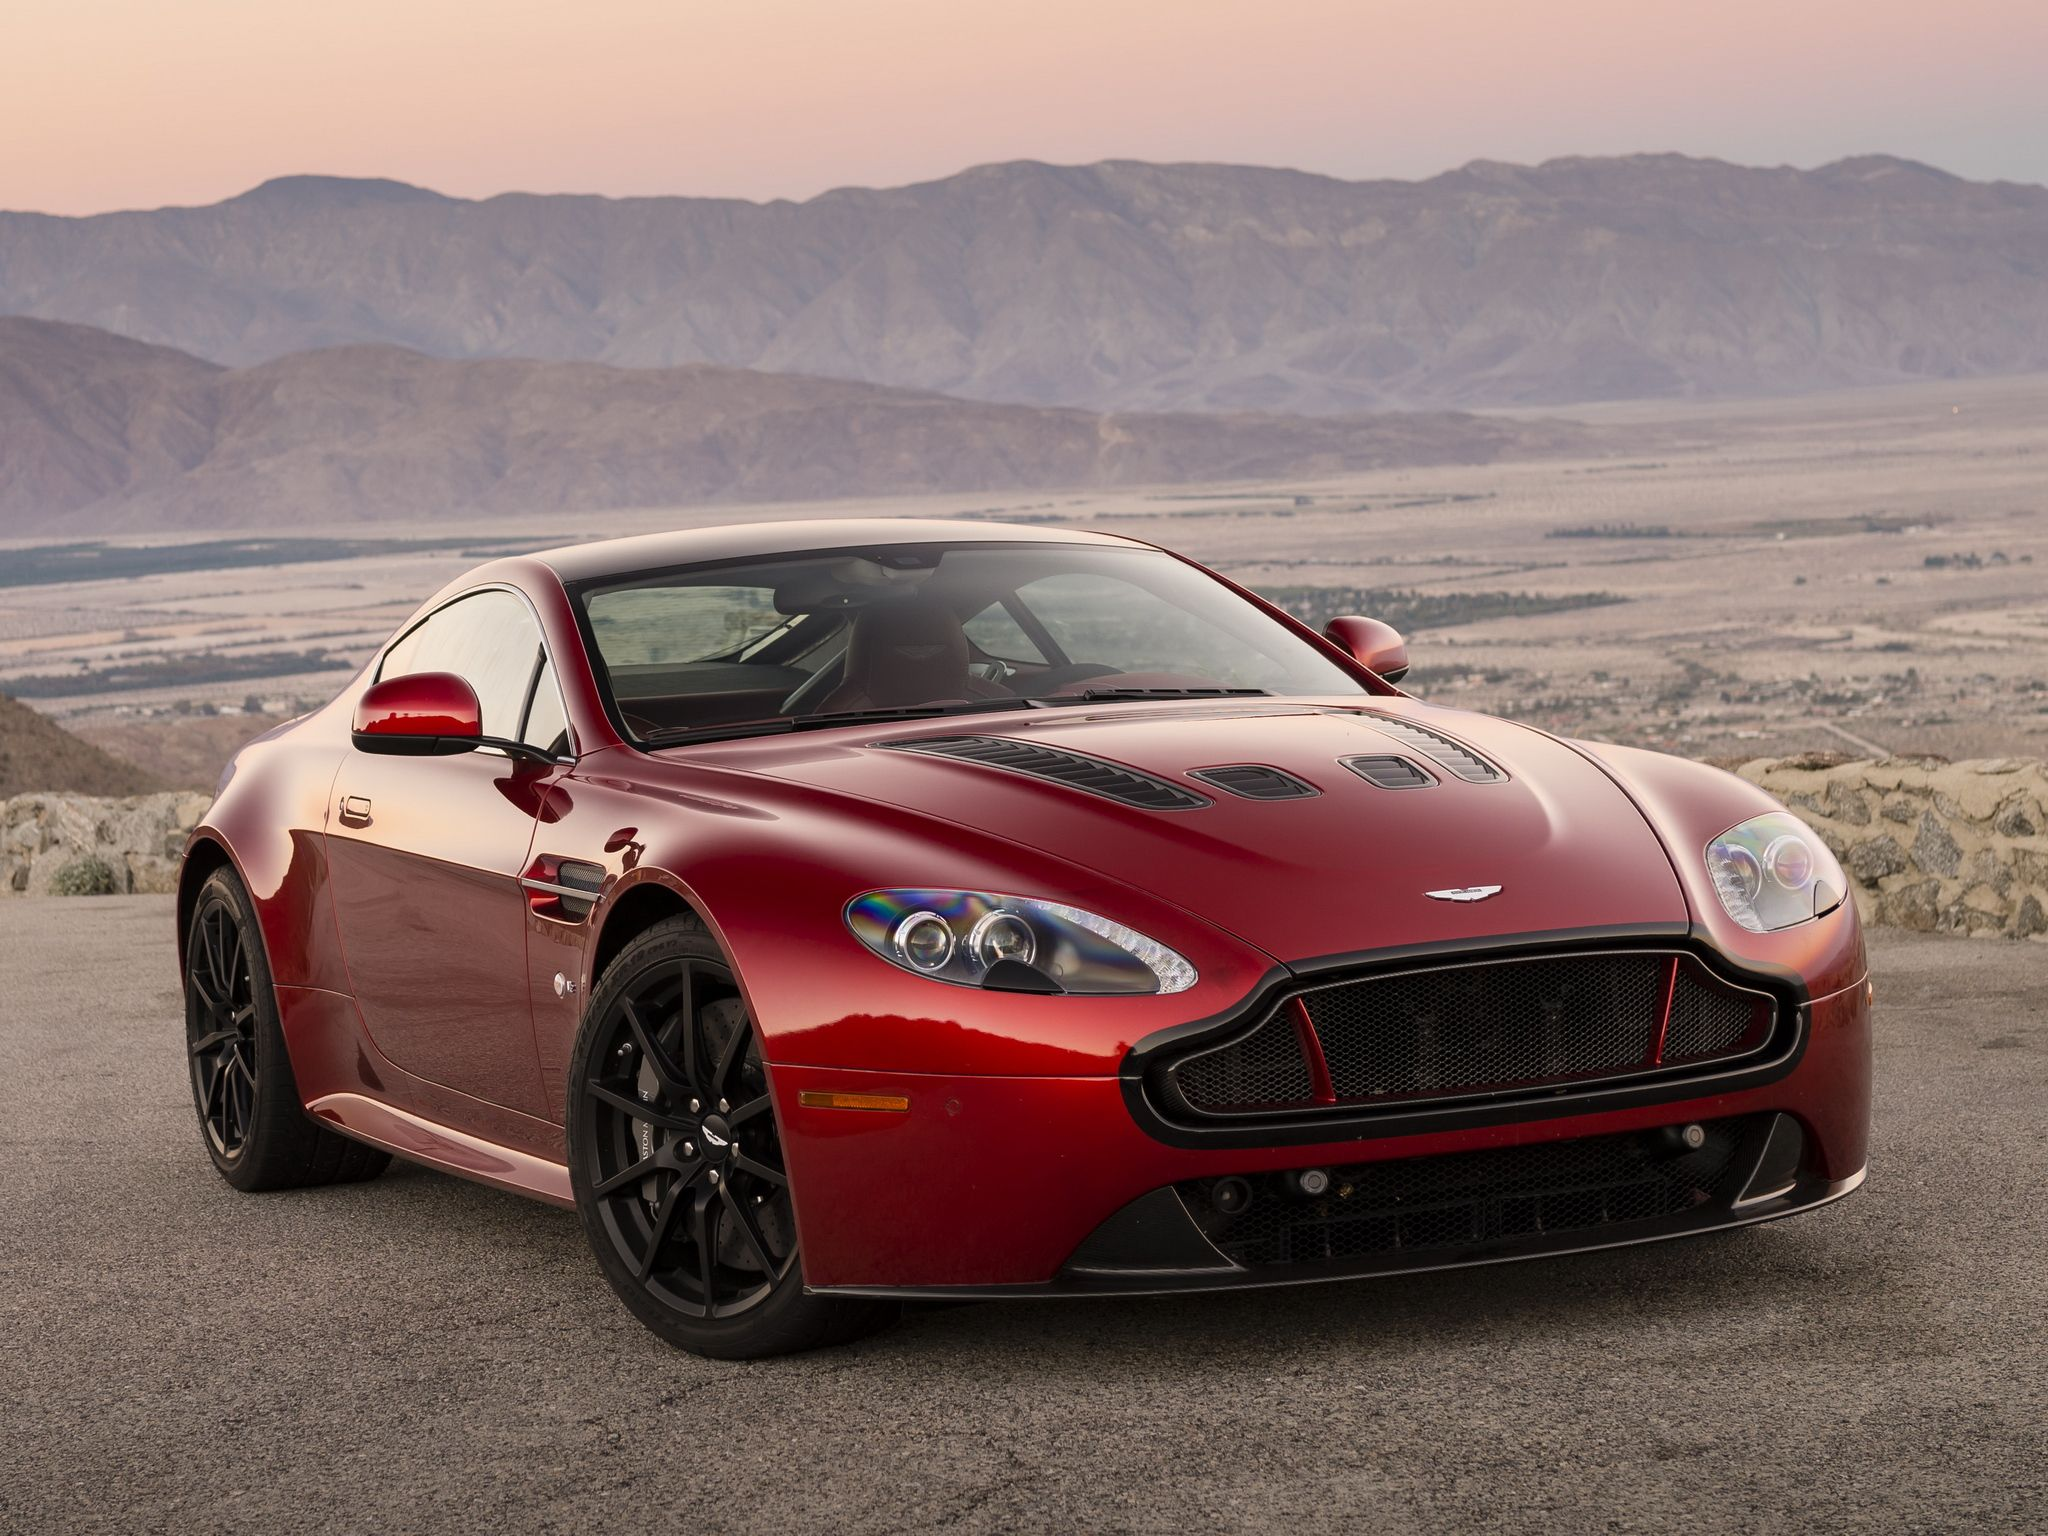 2015 Aston Martin DB9 puter Wallpapers